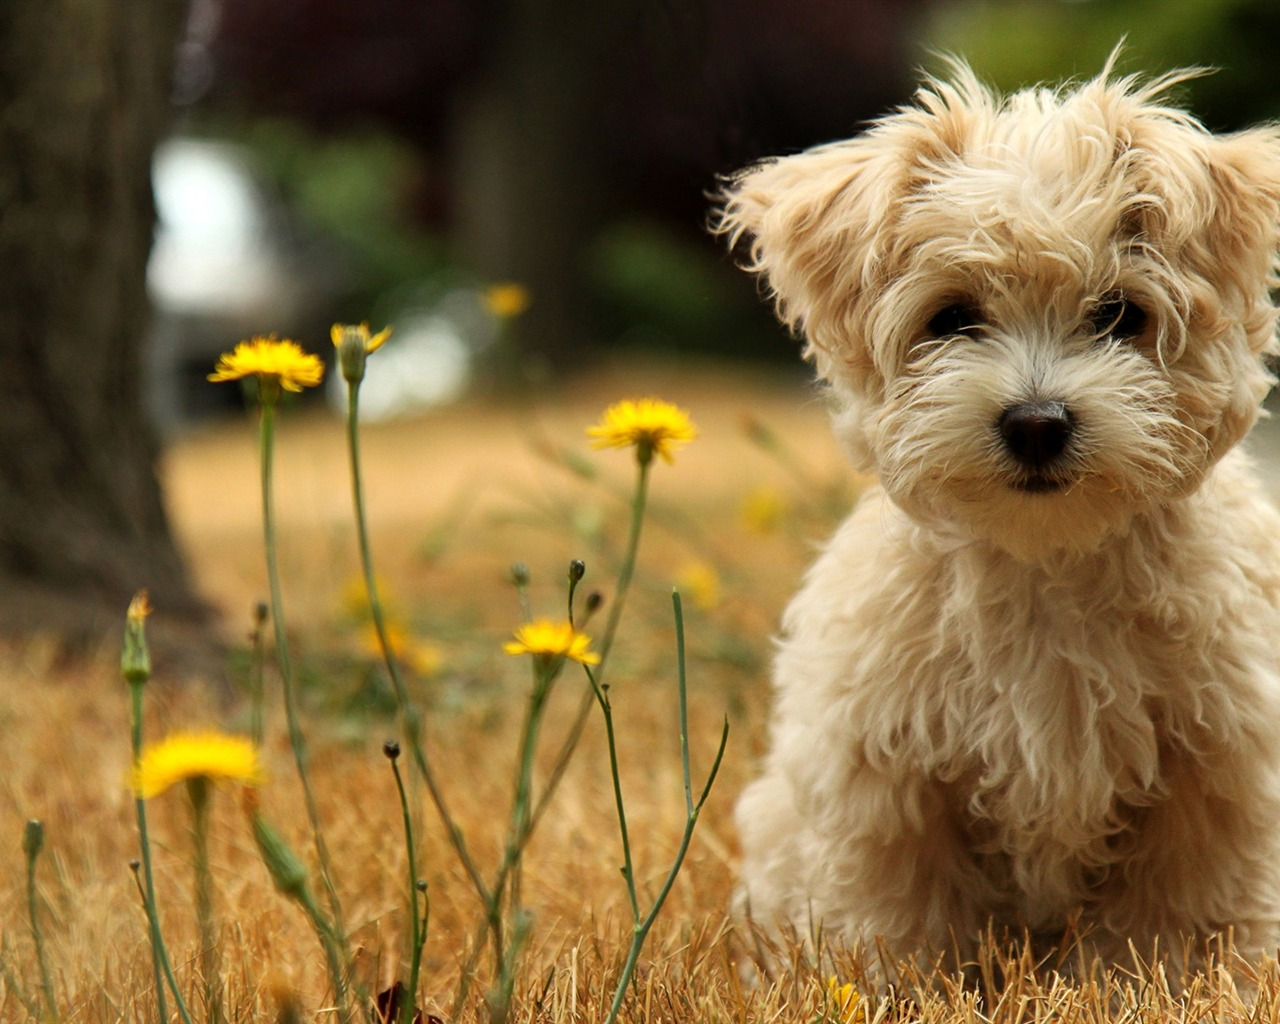 Toy Poodle Cici Wallpapers   1280x1024 wallpaper download  10wallpaper 1280x1024